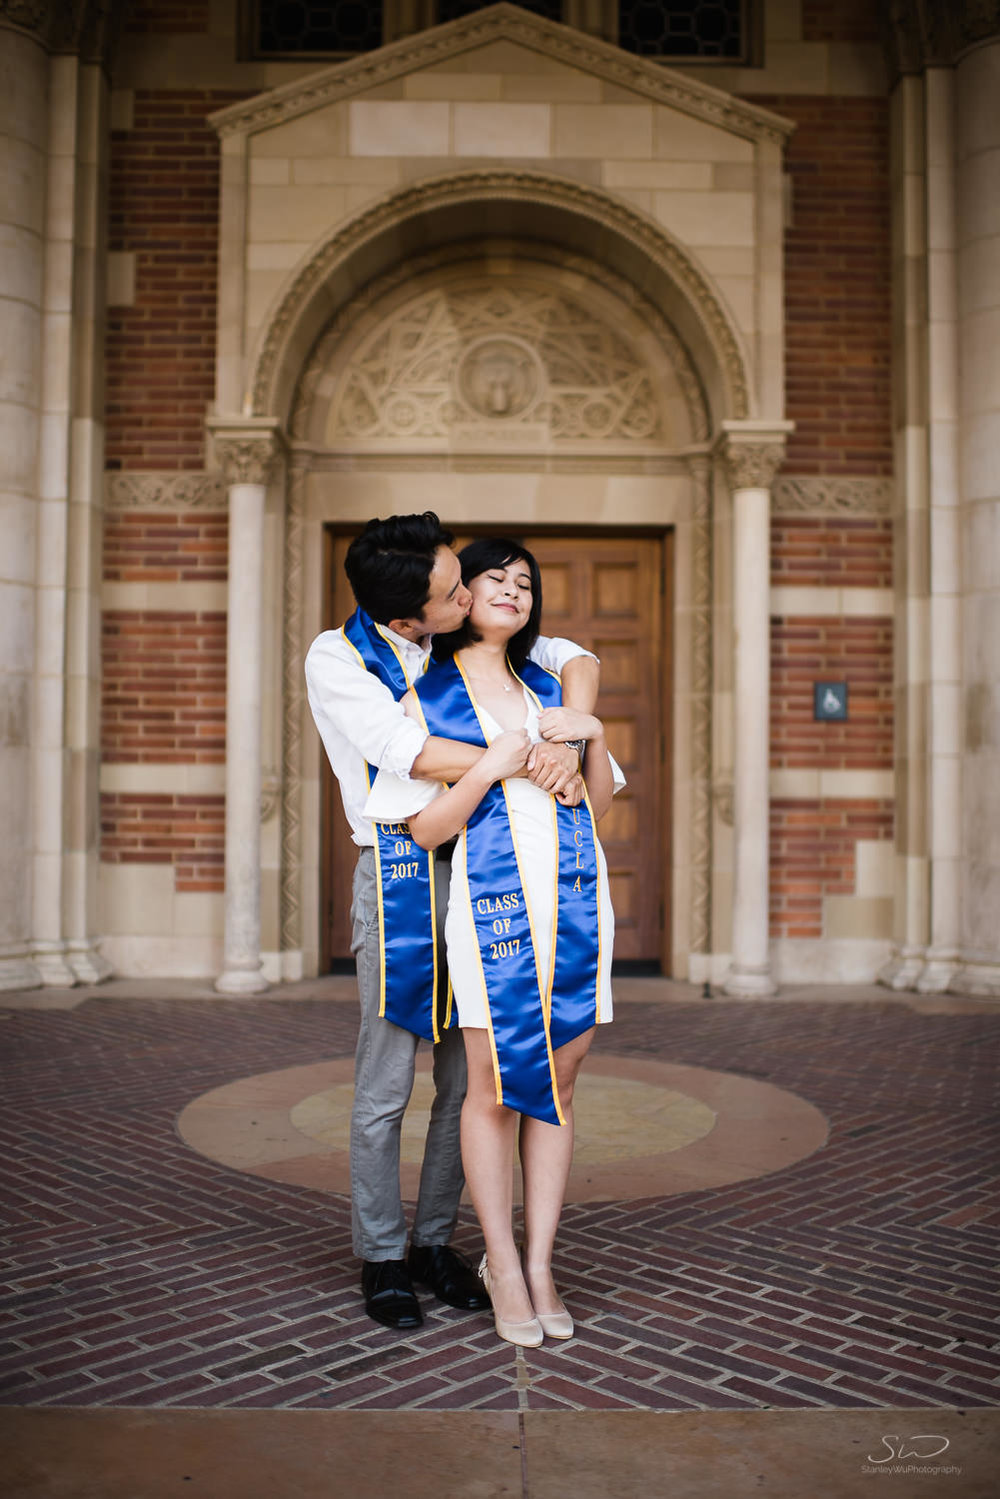 Copy of Copy of couple kissing under arches in royce hall  | Stanley Wu Photography | Los Angeles | Graduation Portraits | UCLA, USC, LMU, Pepperdine, CSULA, CSUN, CSULB, UCI, UCSD